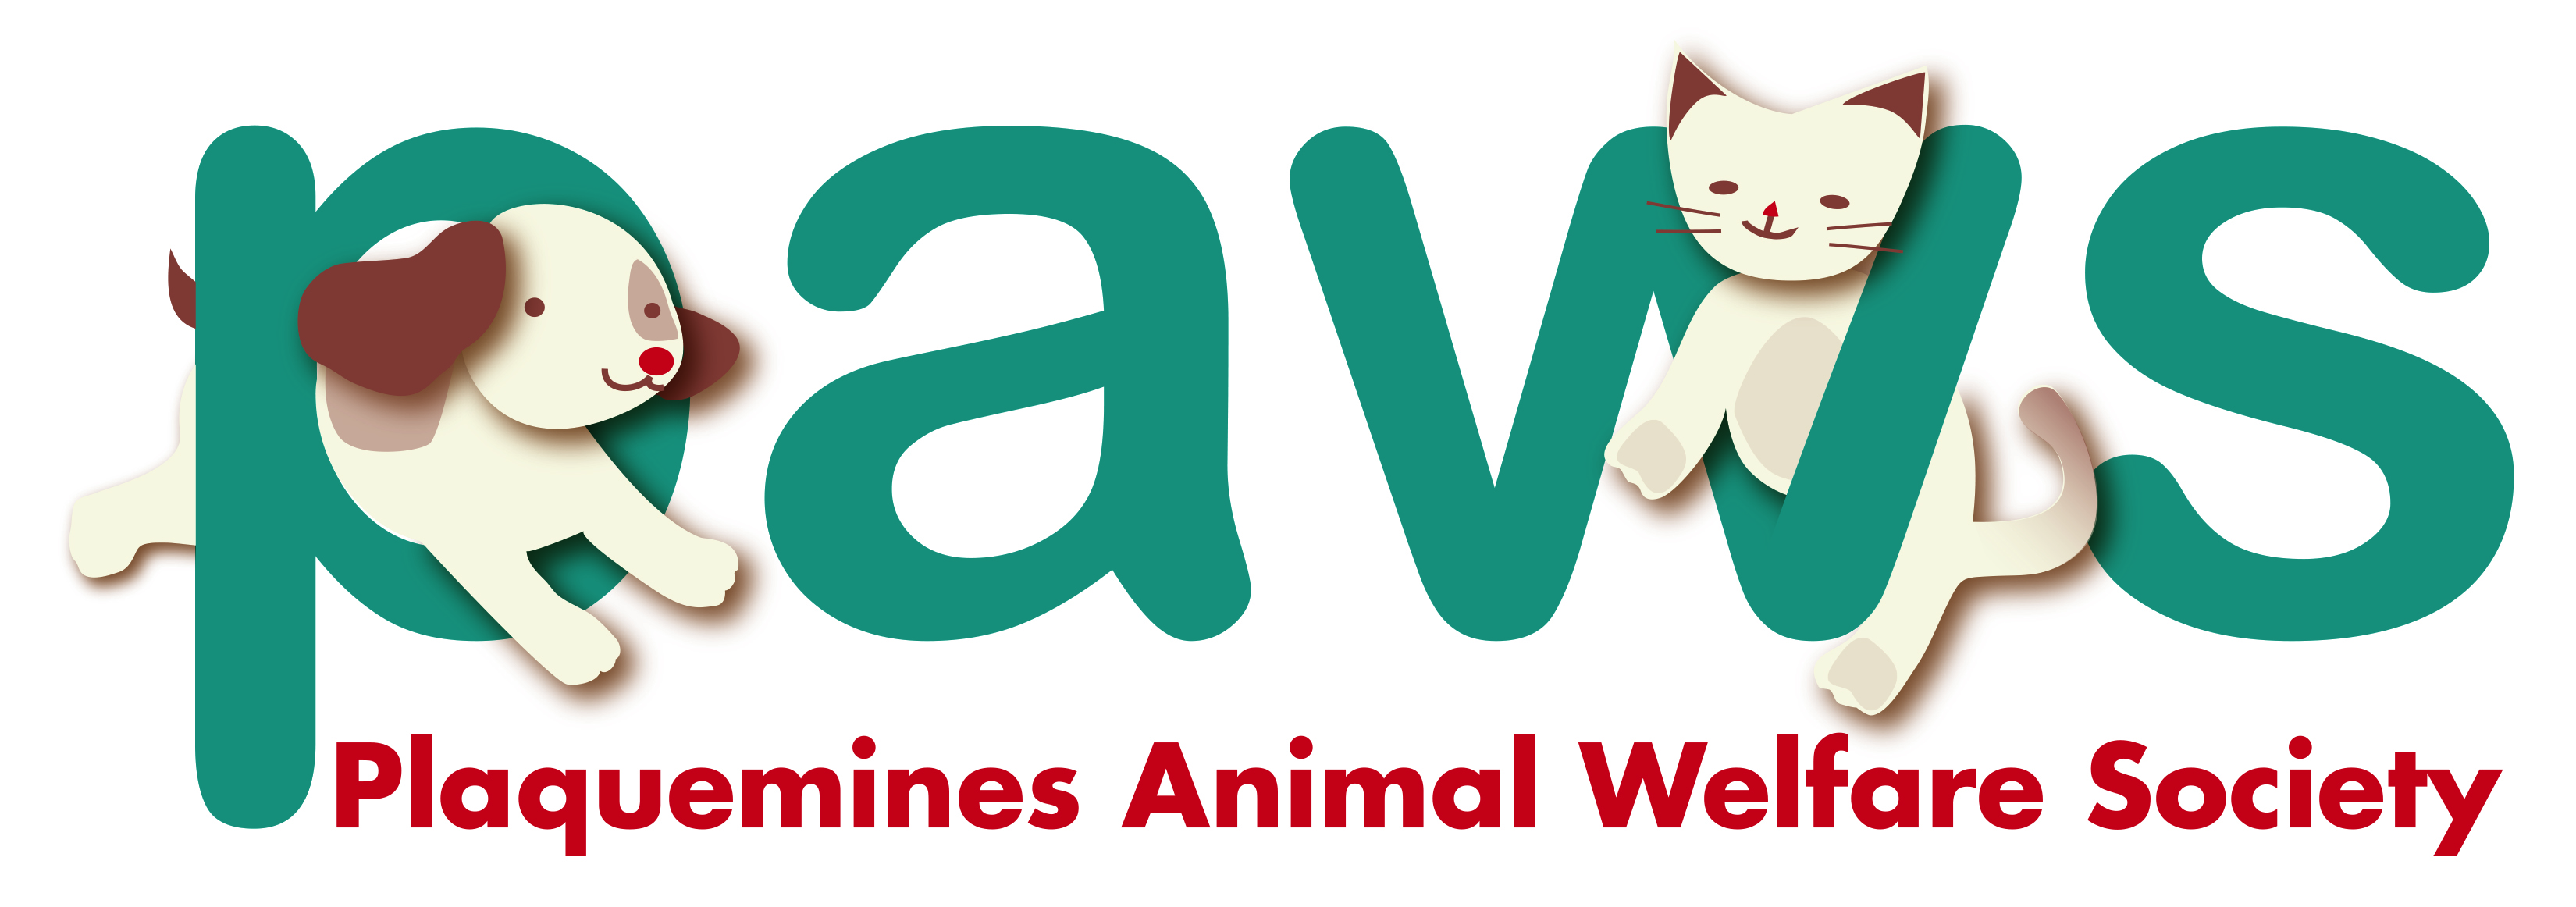 P.A.W.S.-Plaquemines Animal Welfare Society